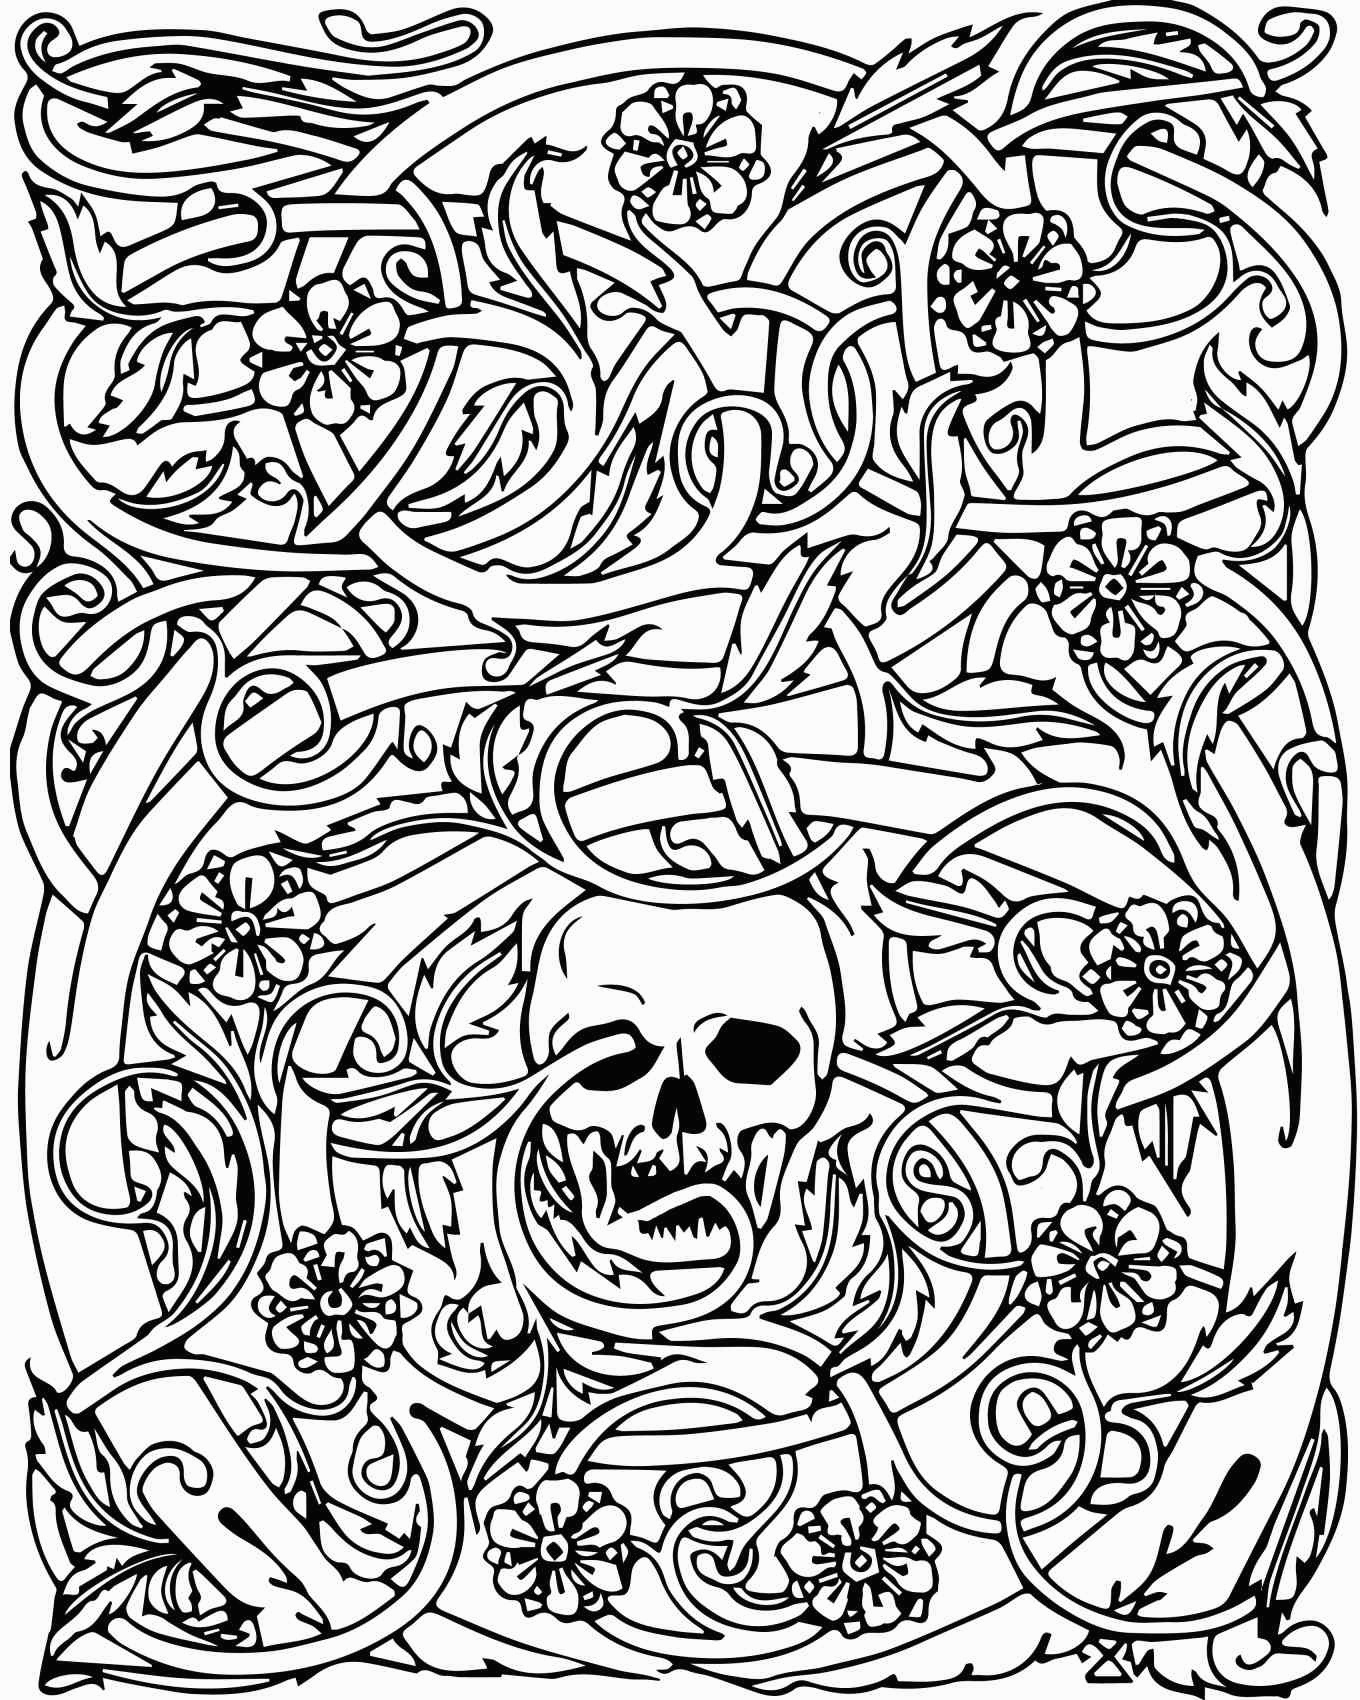 coloring pictures for adults owl coloring pages for adults free detailed owl coloring adults coloring for pictures